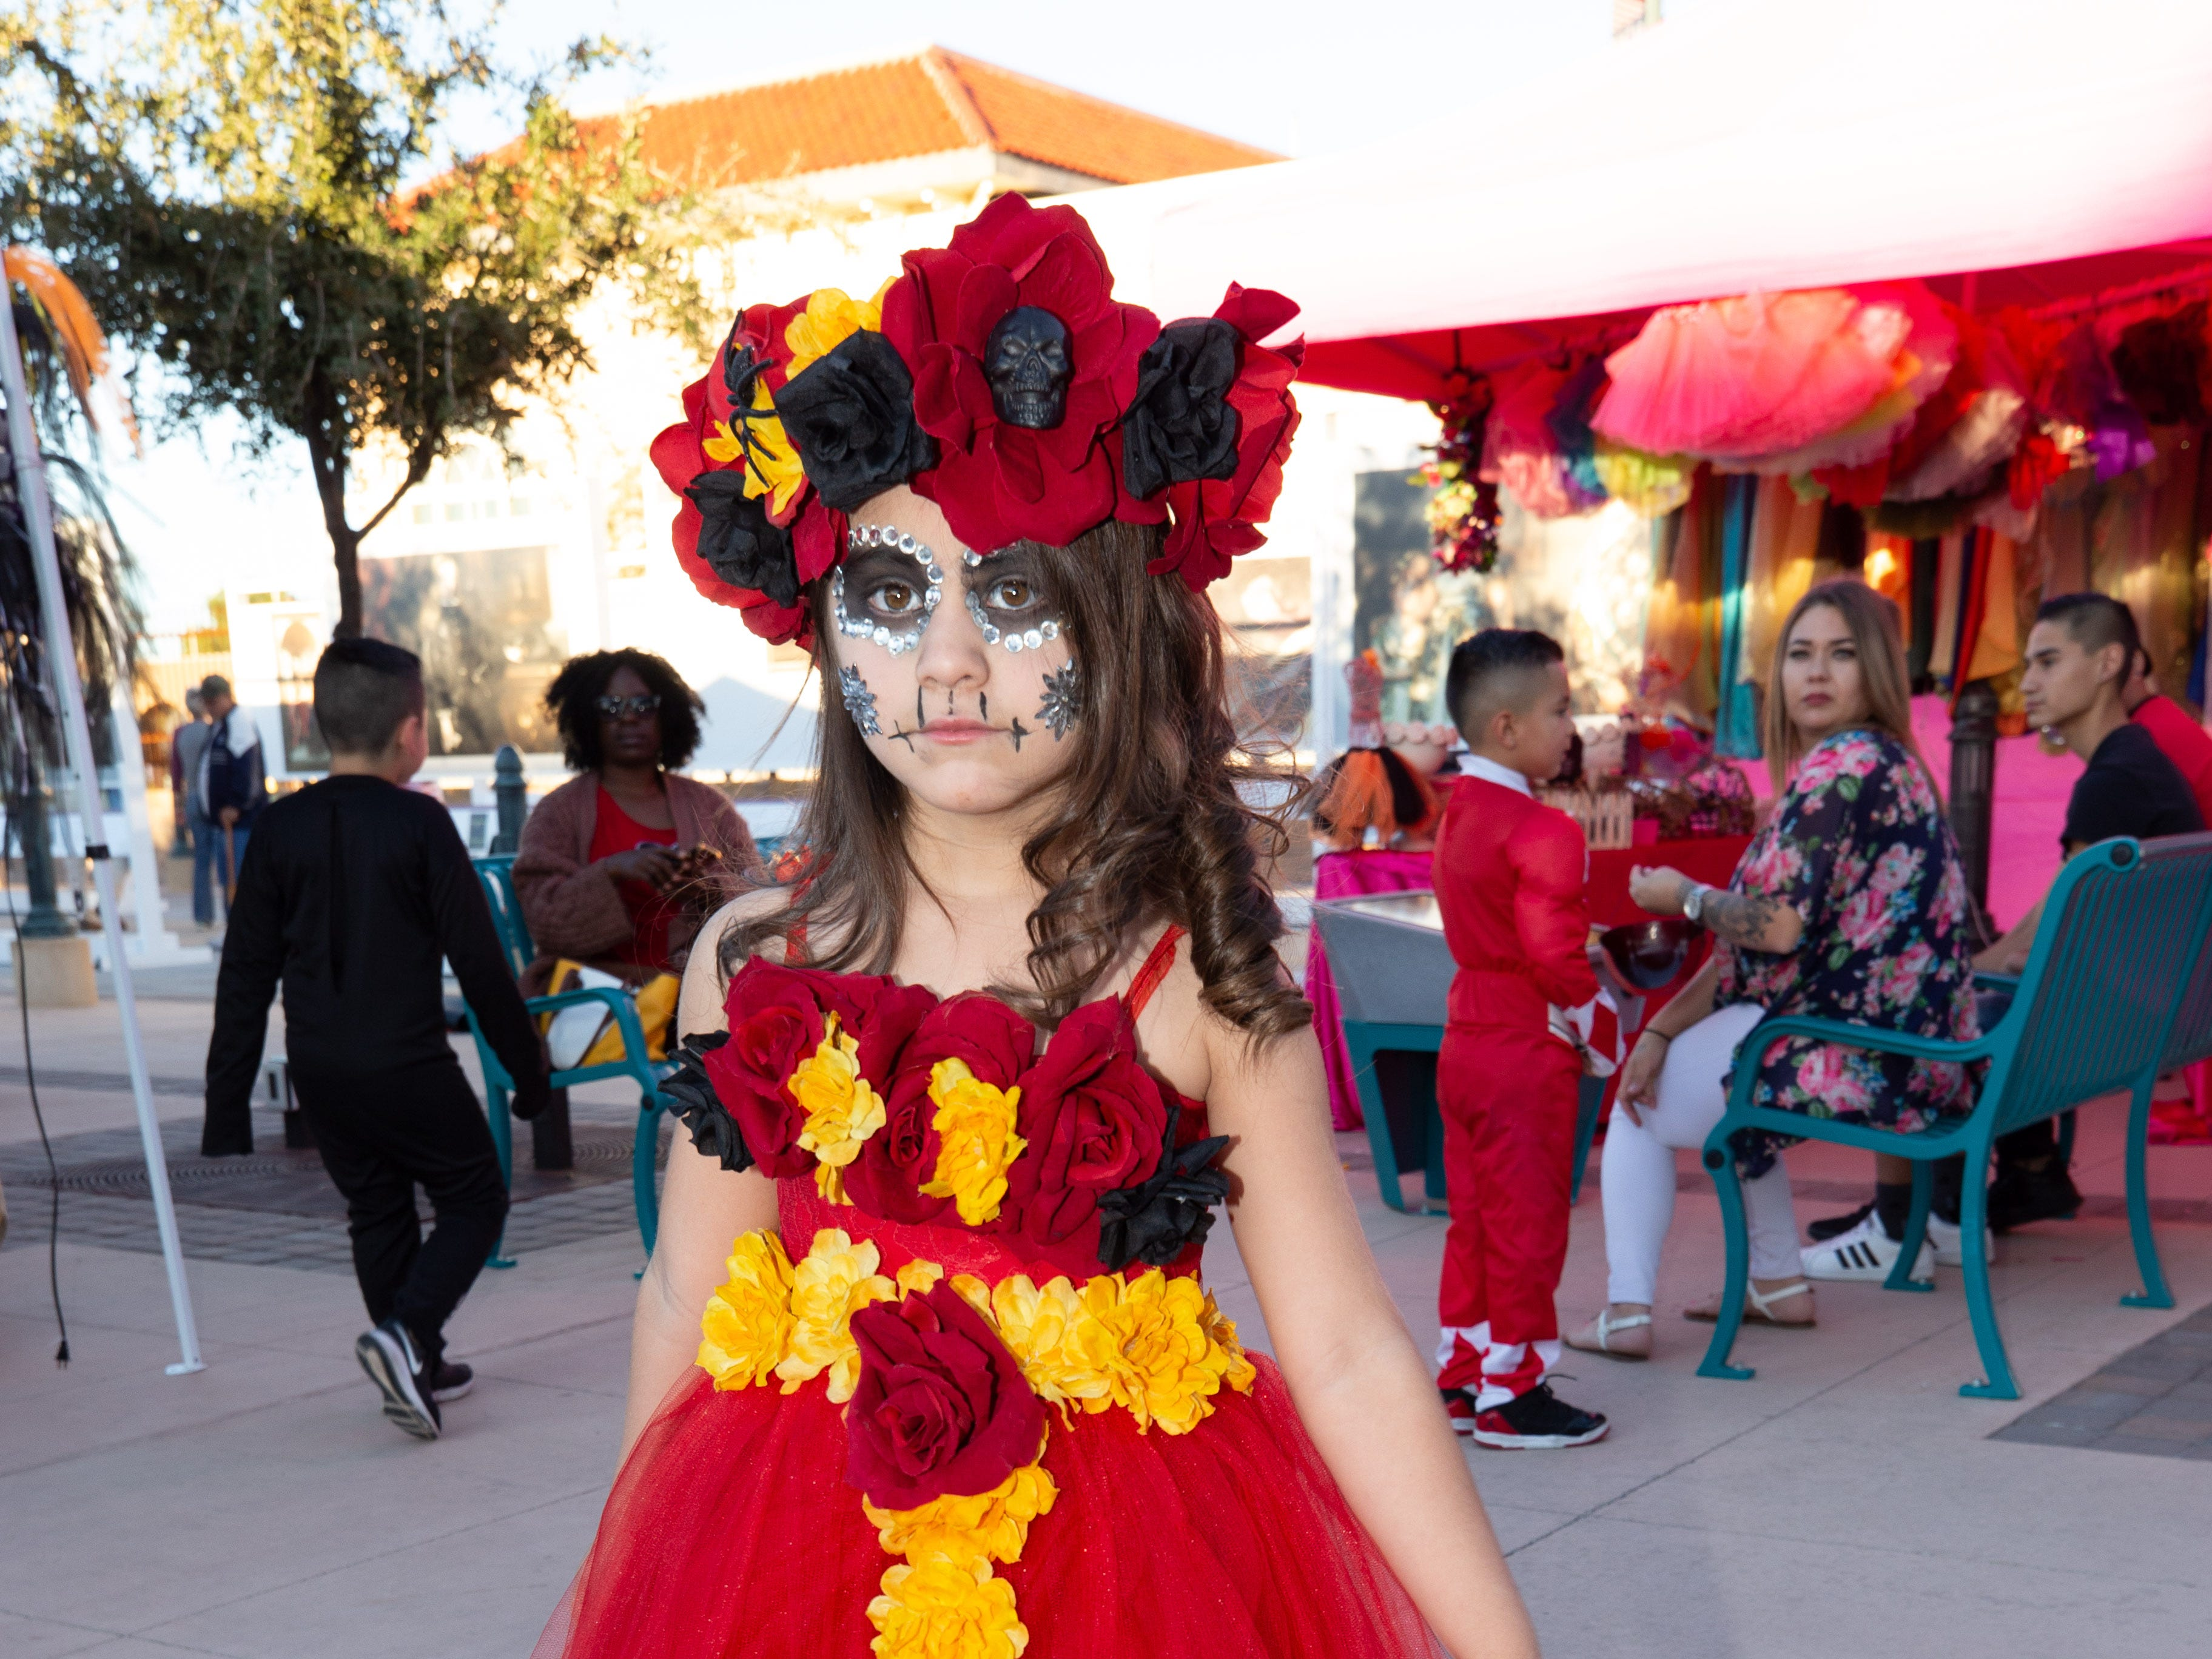 Luna Rosales, 5, in an Enchanted Fairyland costume at the 2018 Zombie Walk held on Saturday, Oct. 27, 2018.